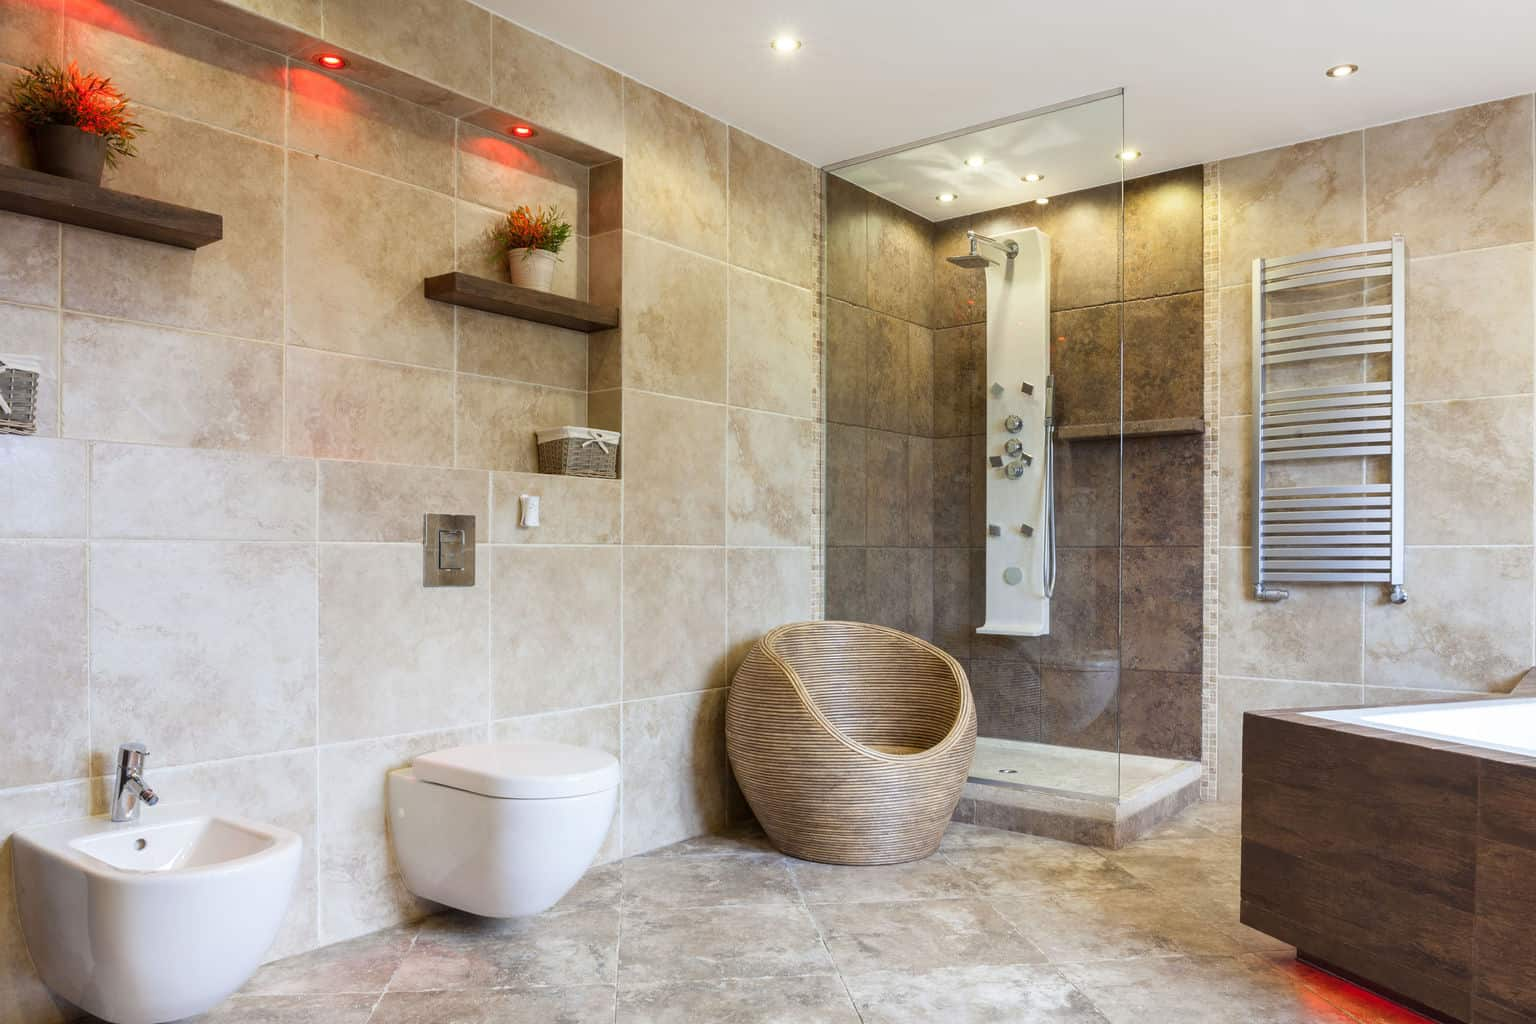 Important Things To Consider When Choosing Shower Tiles